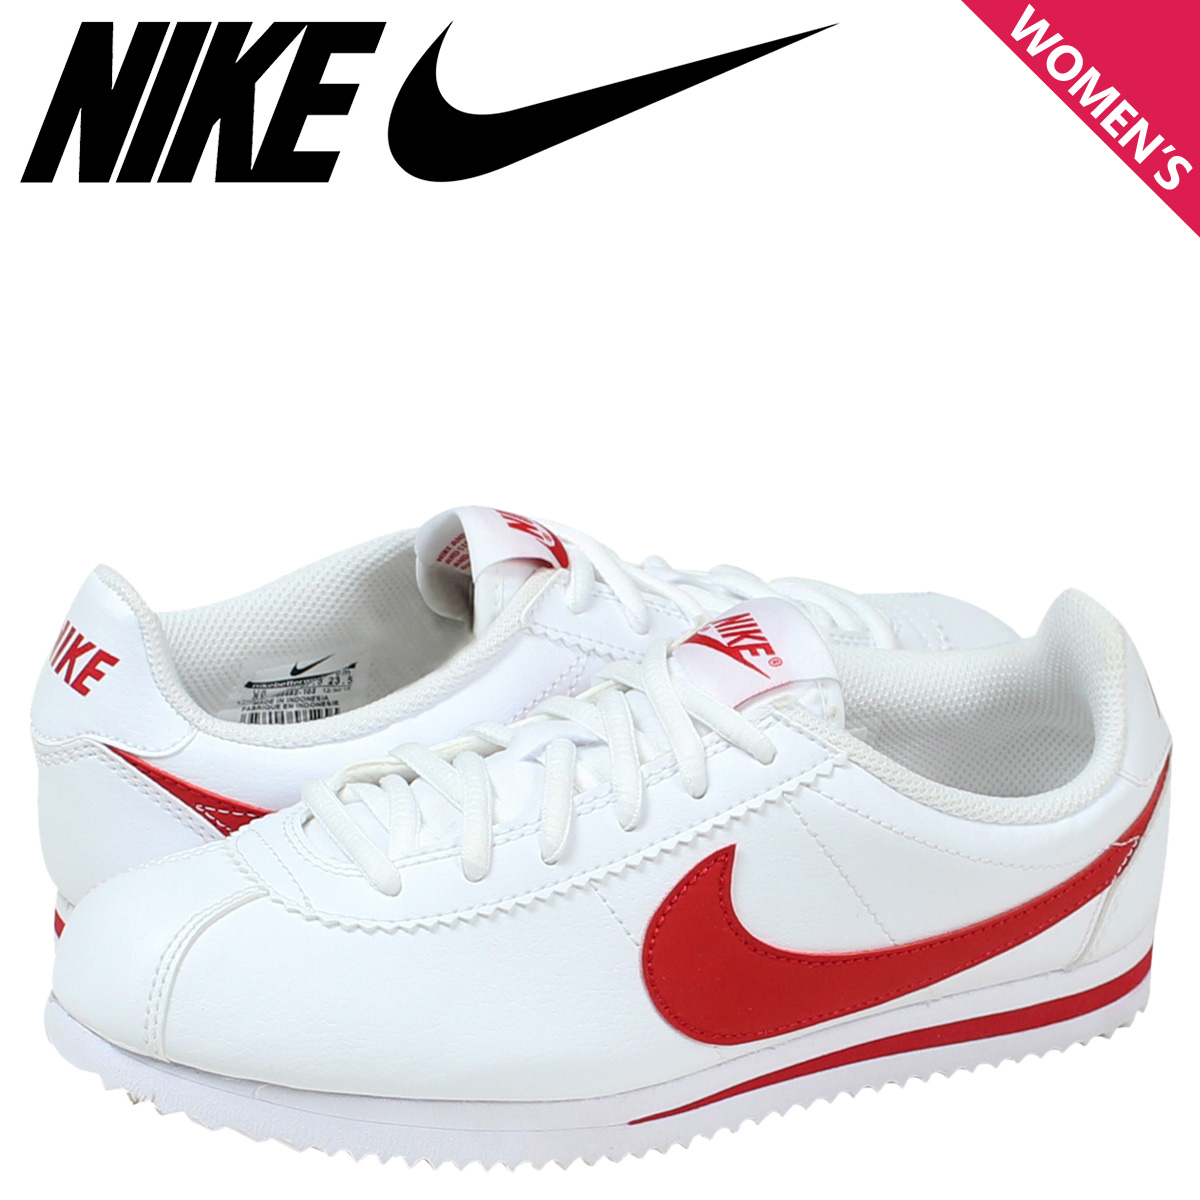 low priced 40305 e50ba Nike NIKE Cortez sneakers Womens CORTEZ GS 749482-103 shoes white